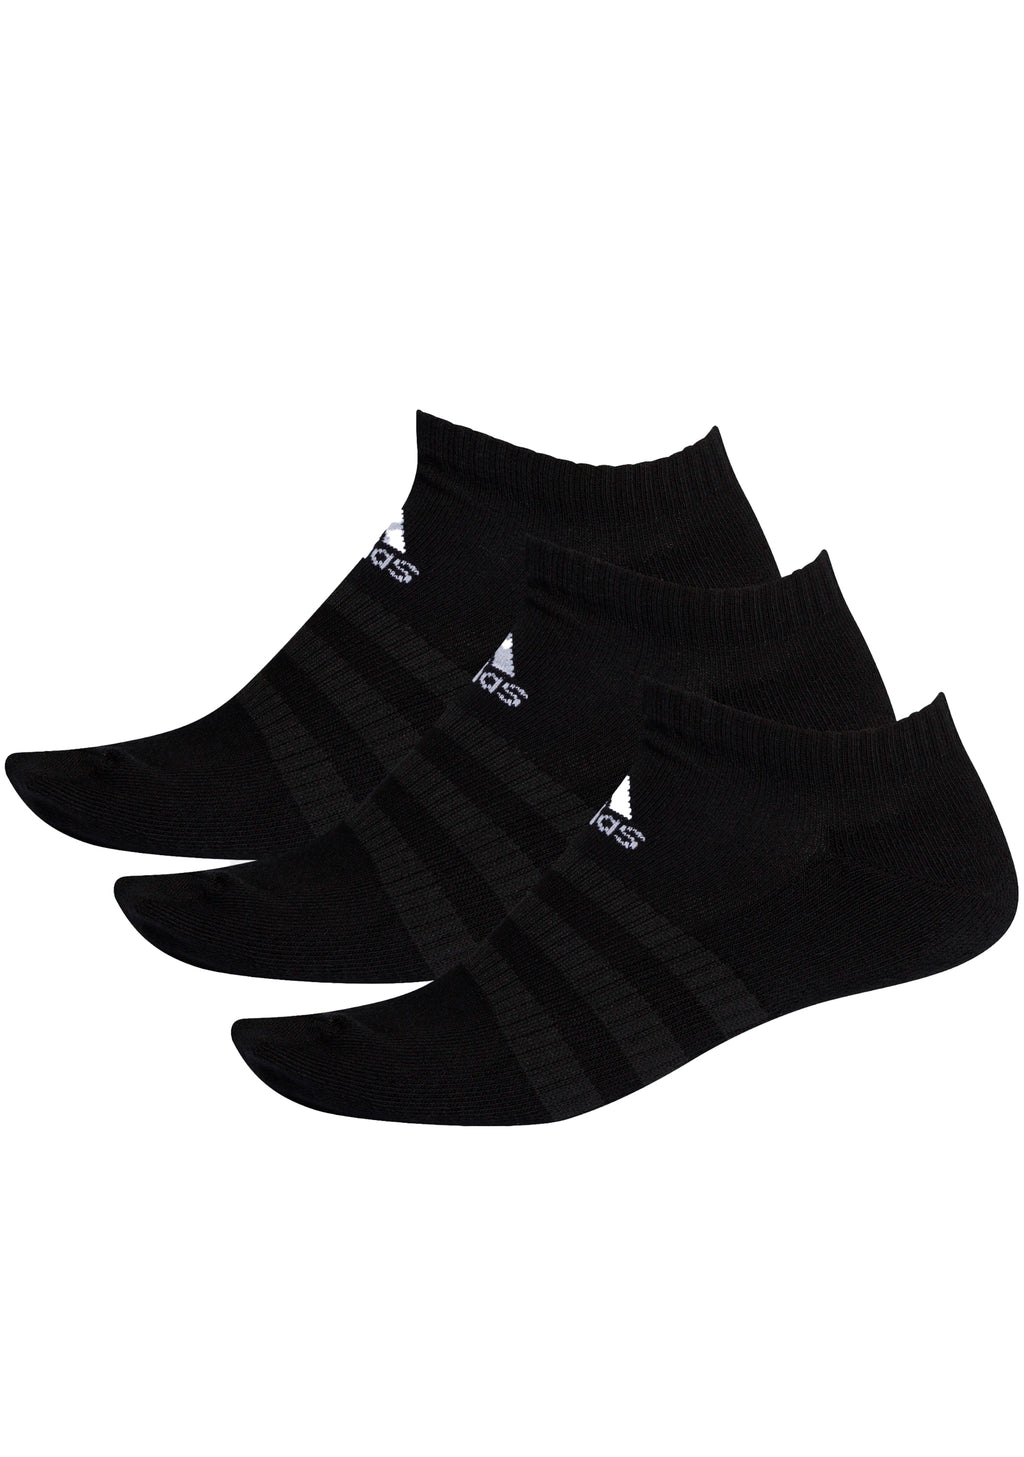 ADIDAS CUSHIONED LOW-CUT 3 PACK BLACK <br> DZ9385